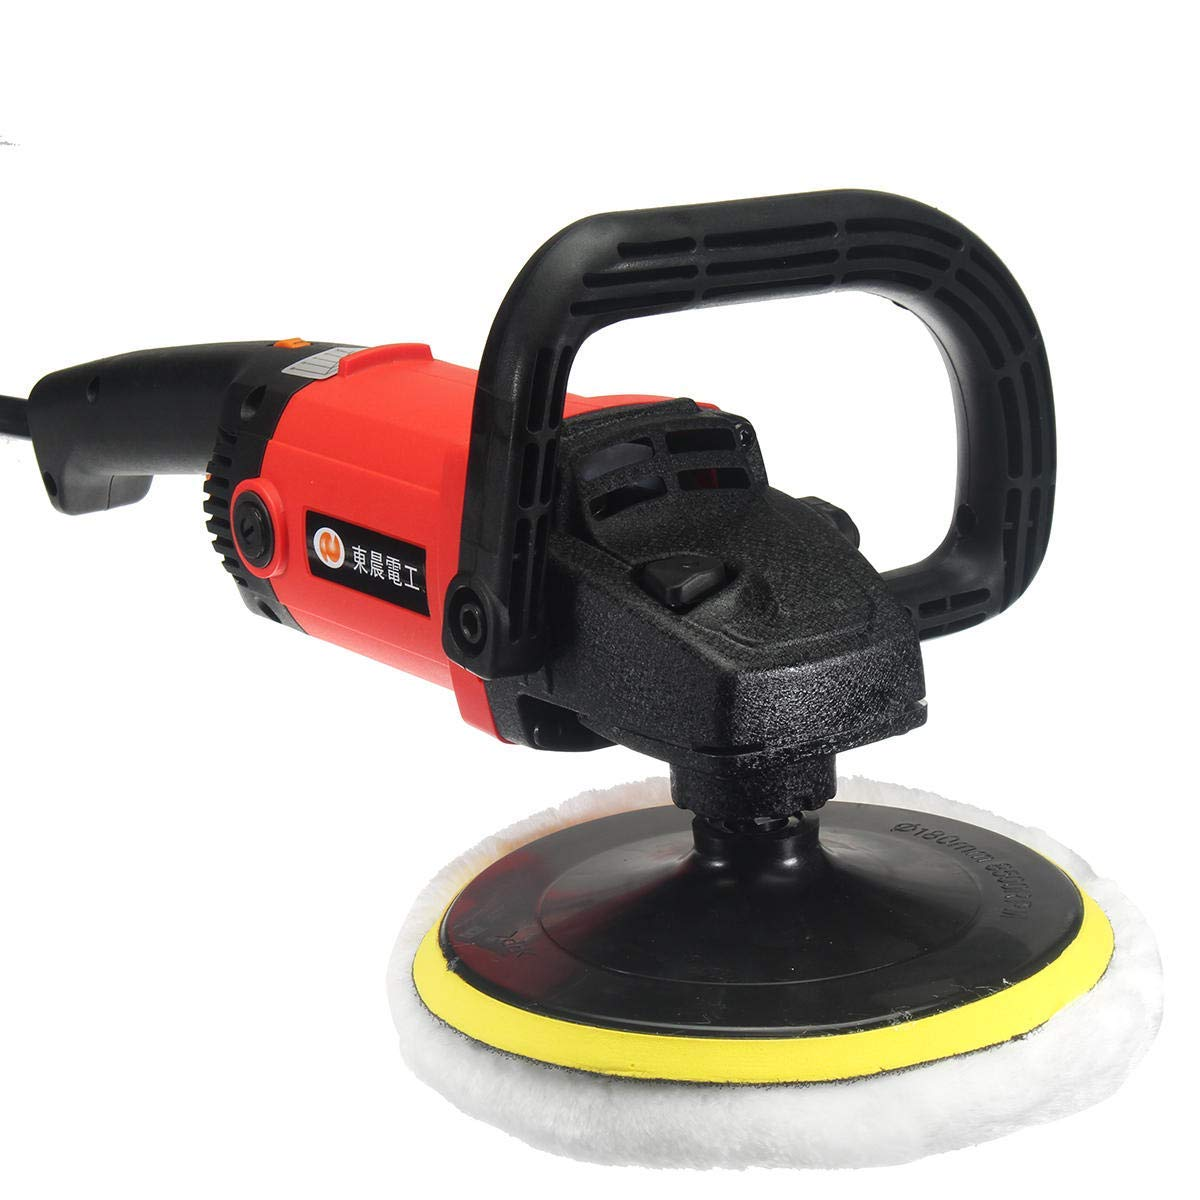 220V 1200W Electric Polisher Buffer Waxing Machine Electric Detailing - Power Tools Electric Polisher - 1 x Car Polisher & Buffer